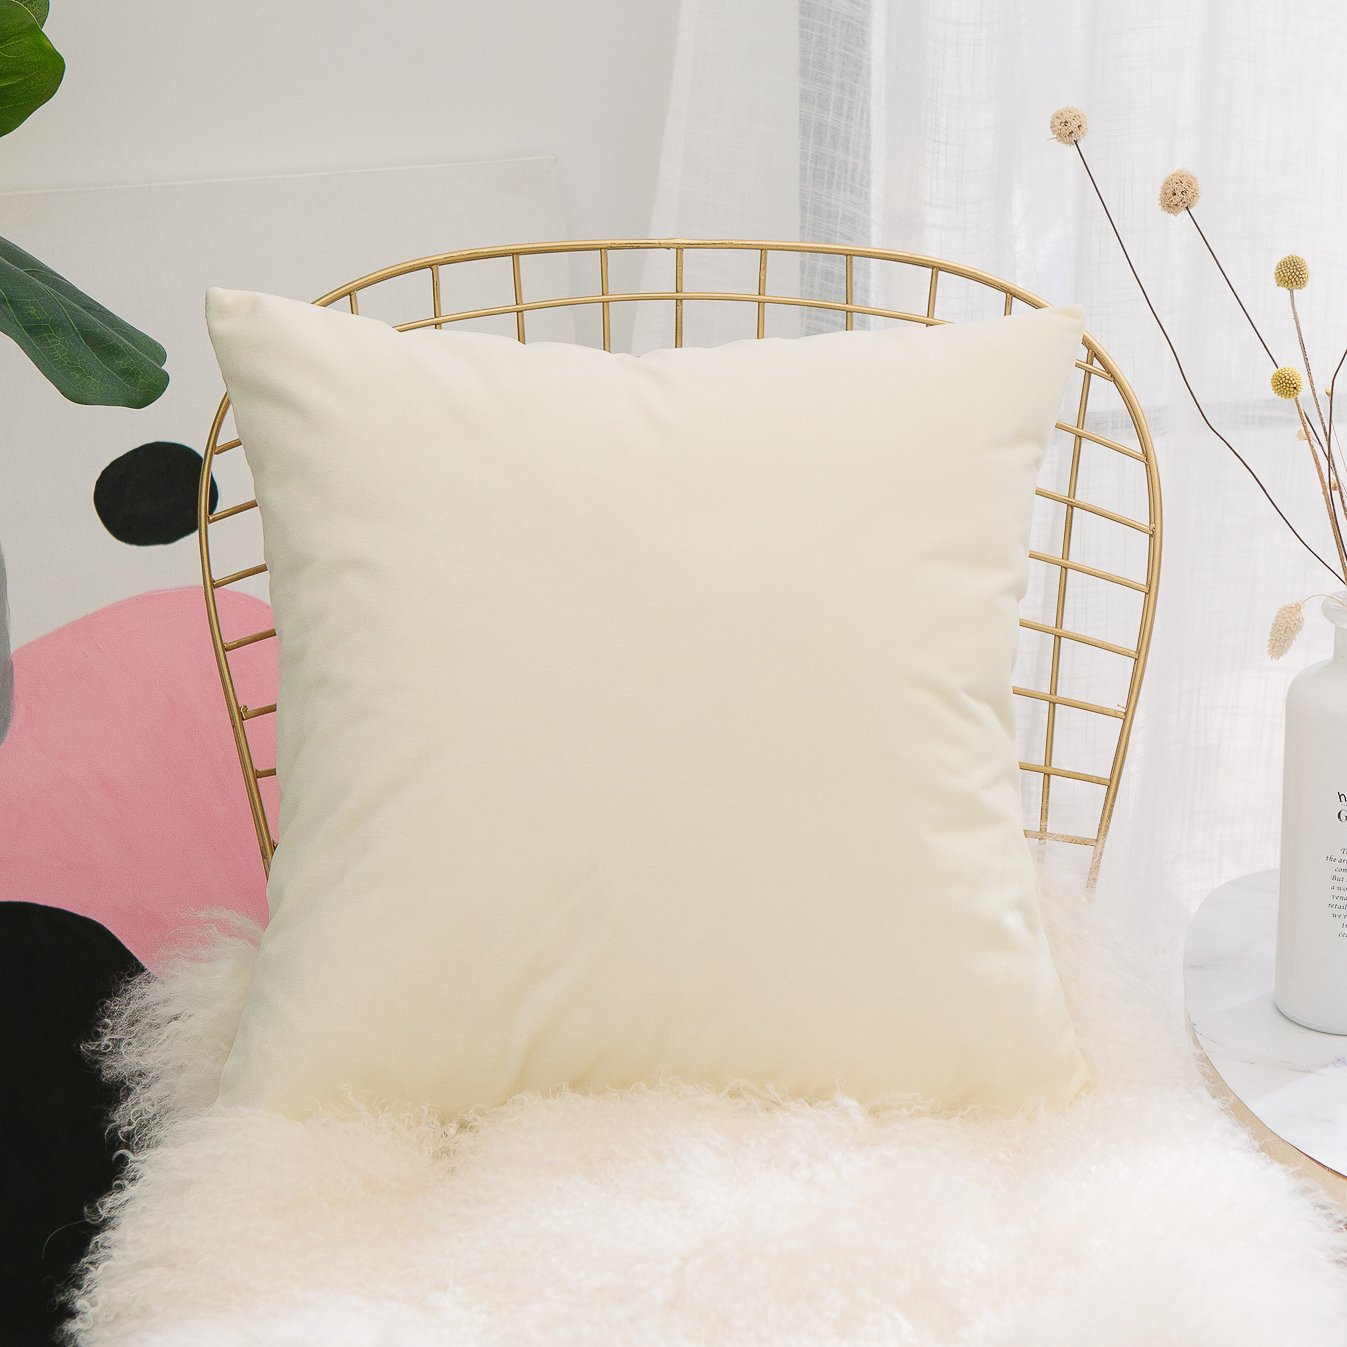 HOME BRILLIANT Ultra Soft elvet Solid Throw Pillow Case Large Cushion Cover Decorative for Nursery/Babies/Girl/Boy, 60 x 60cm, Cream Yellow